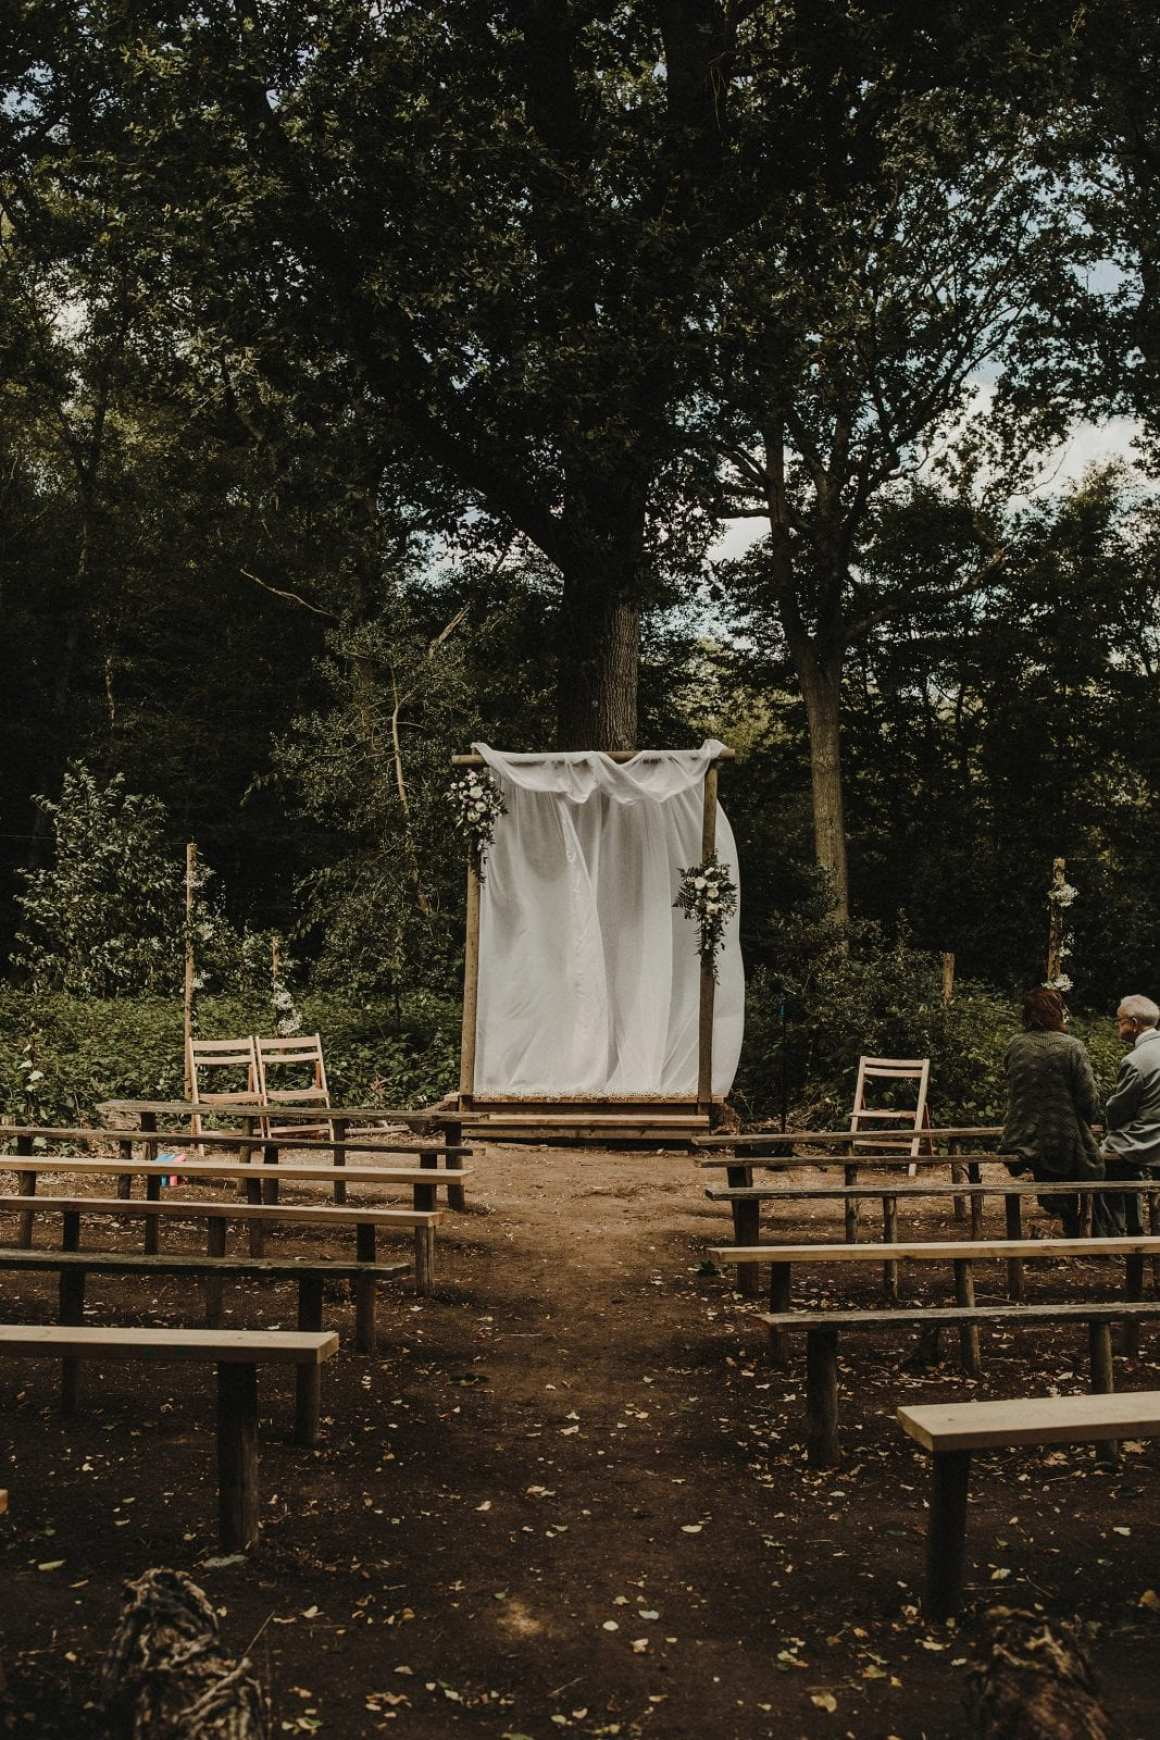 woodland wedding venue UK. Hawthbush Farm